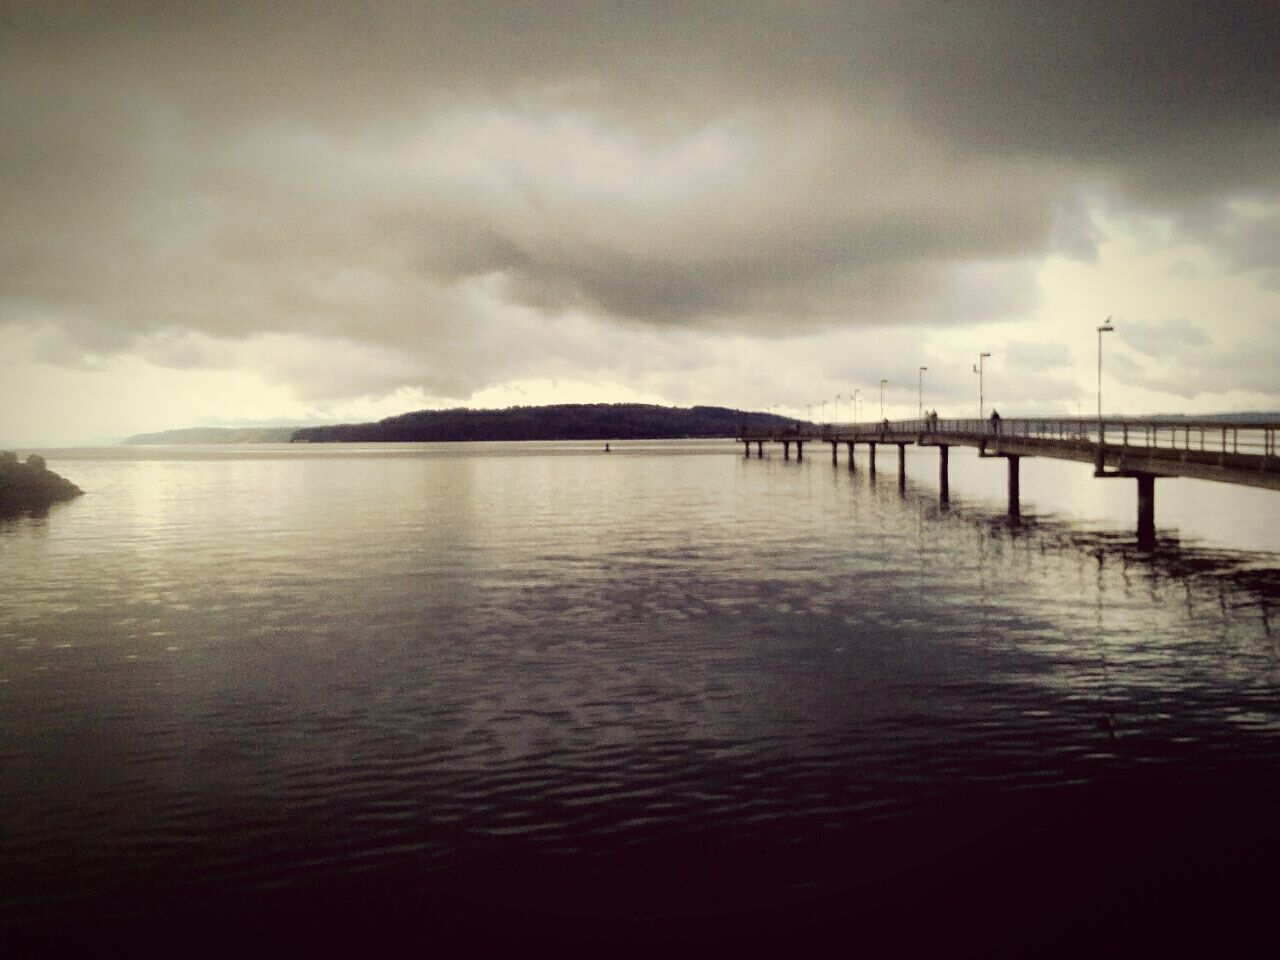 cloud - sky, sky, water, tranquility, outdoors, sea, nature, scenics, tranquil scene, no people, bridge, beauty in nature, architecture, day, storm cloud